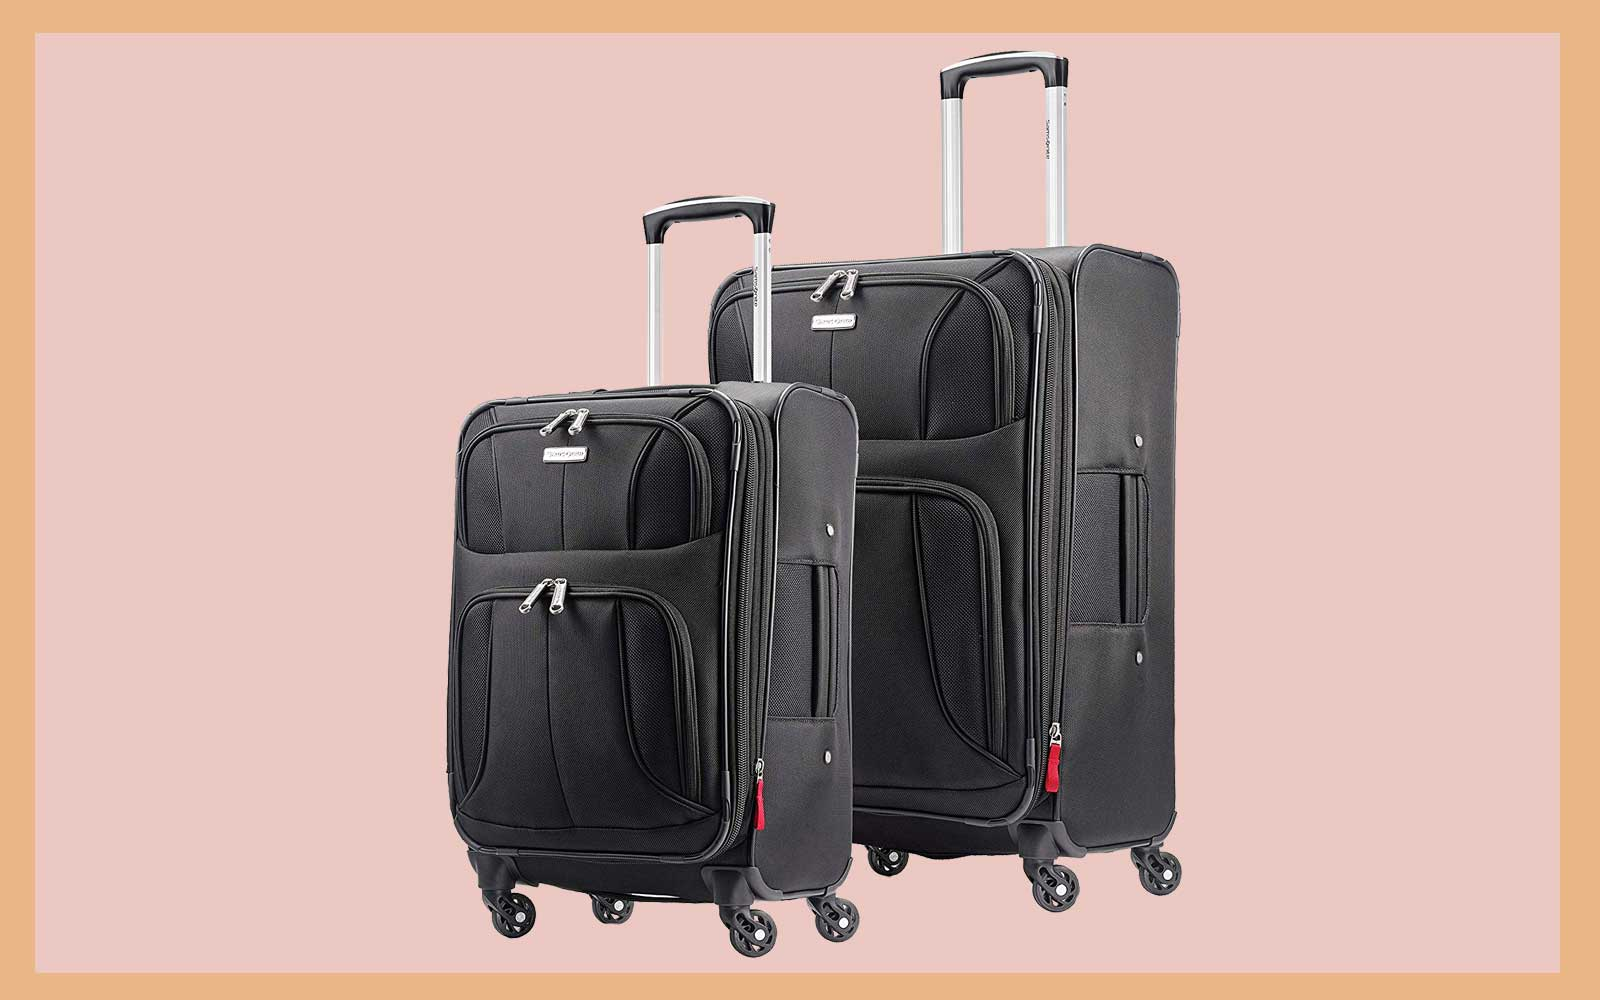 Black Samsonite Luggage Set